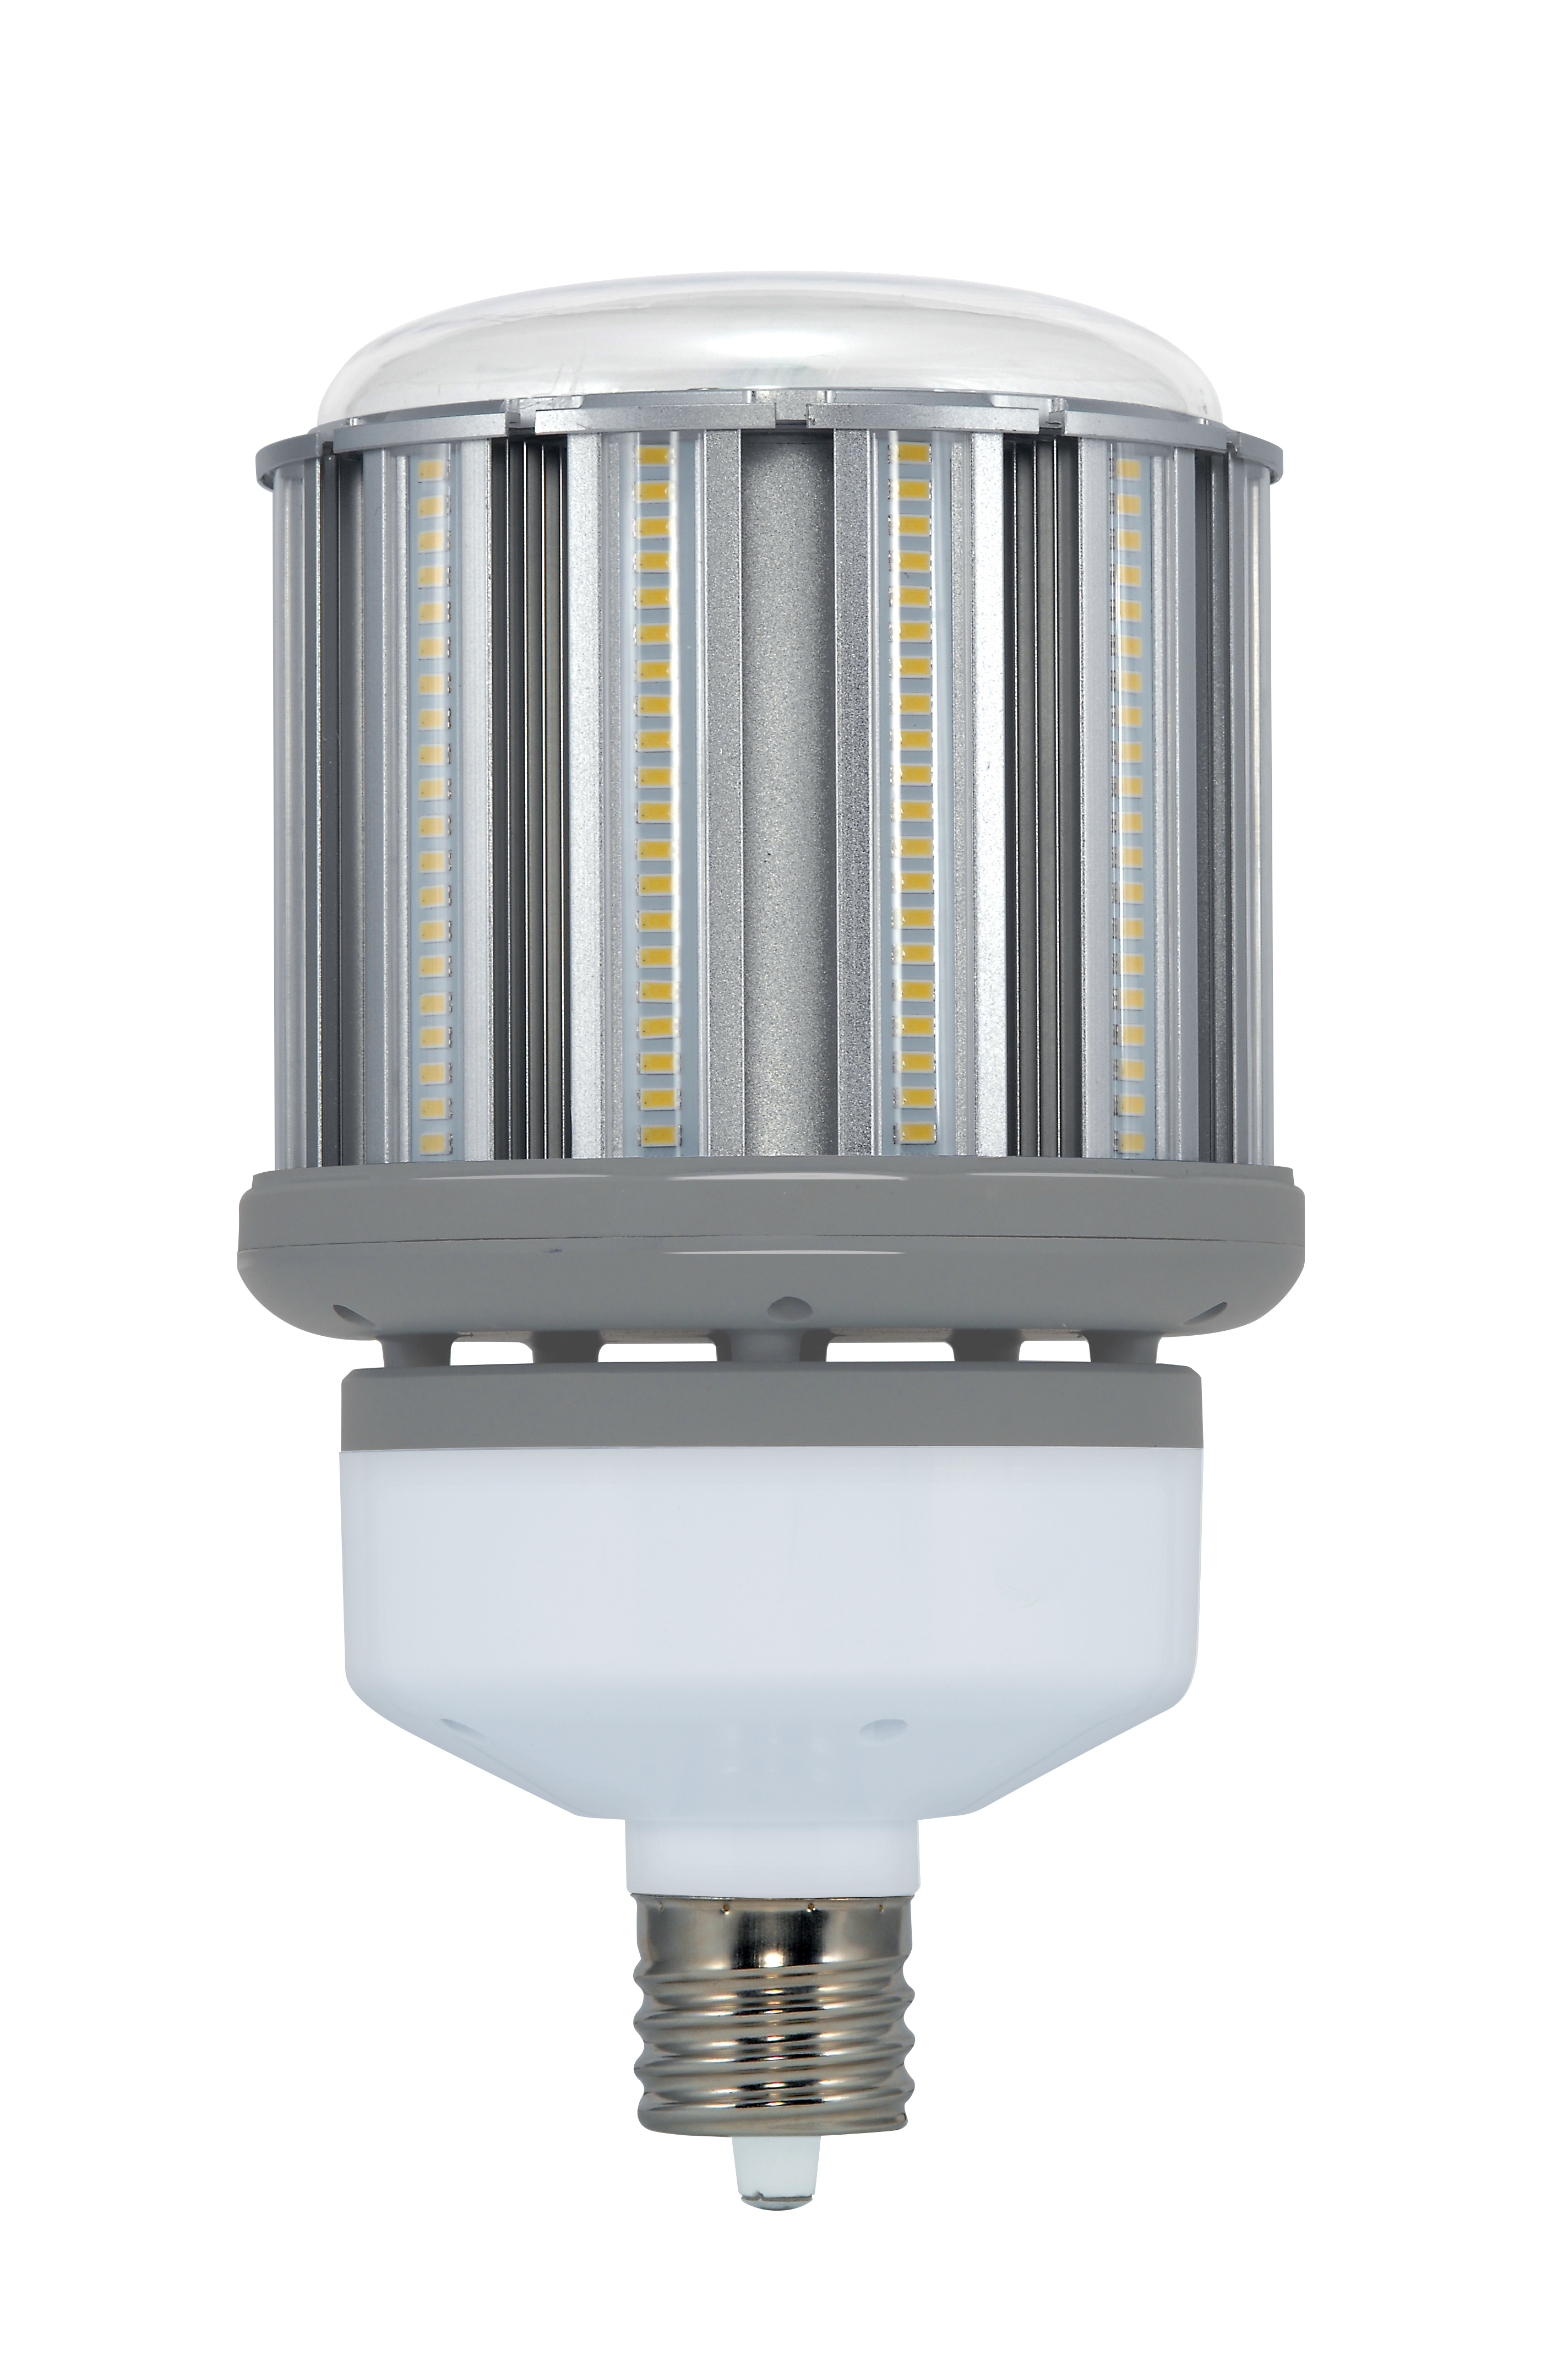 Satco,S9395,SATCO® S9395 Post Top LED Lamp, 80 W, Mogul Extended EX39 Lamp Base, 10640 Lumens